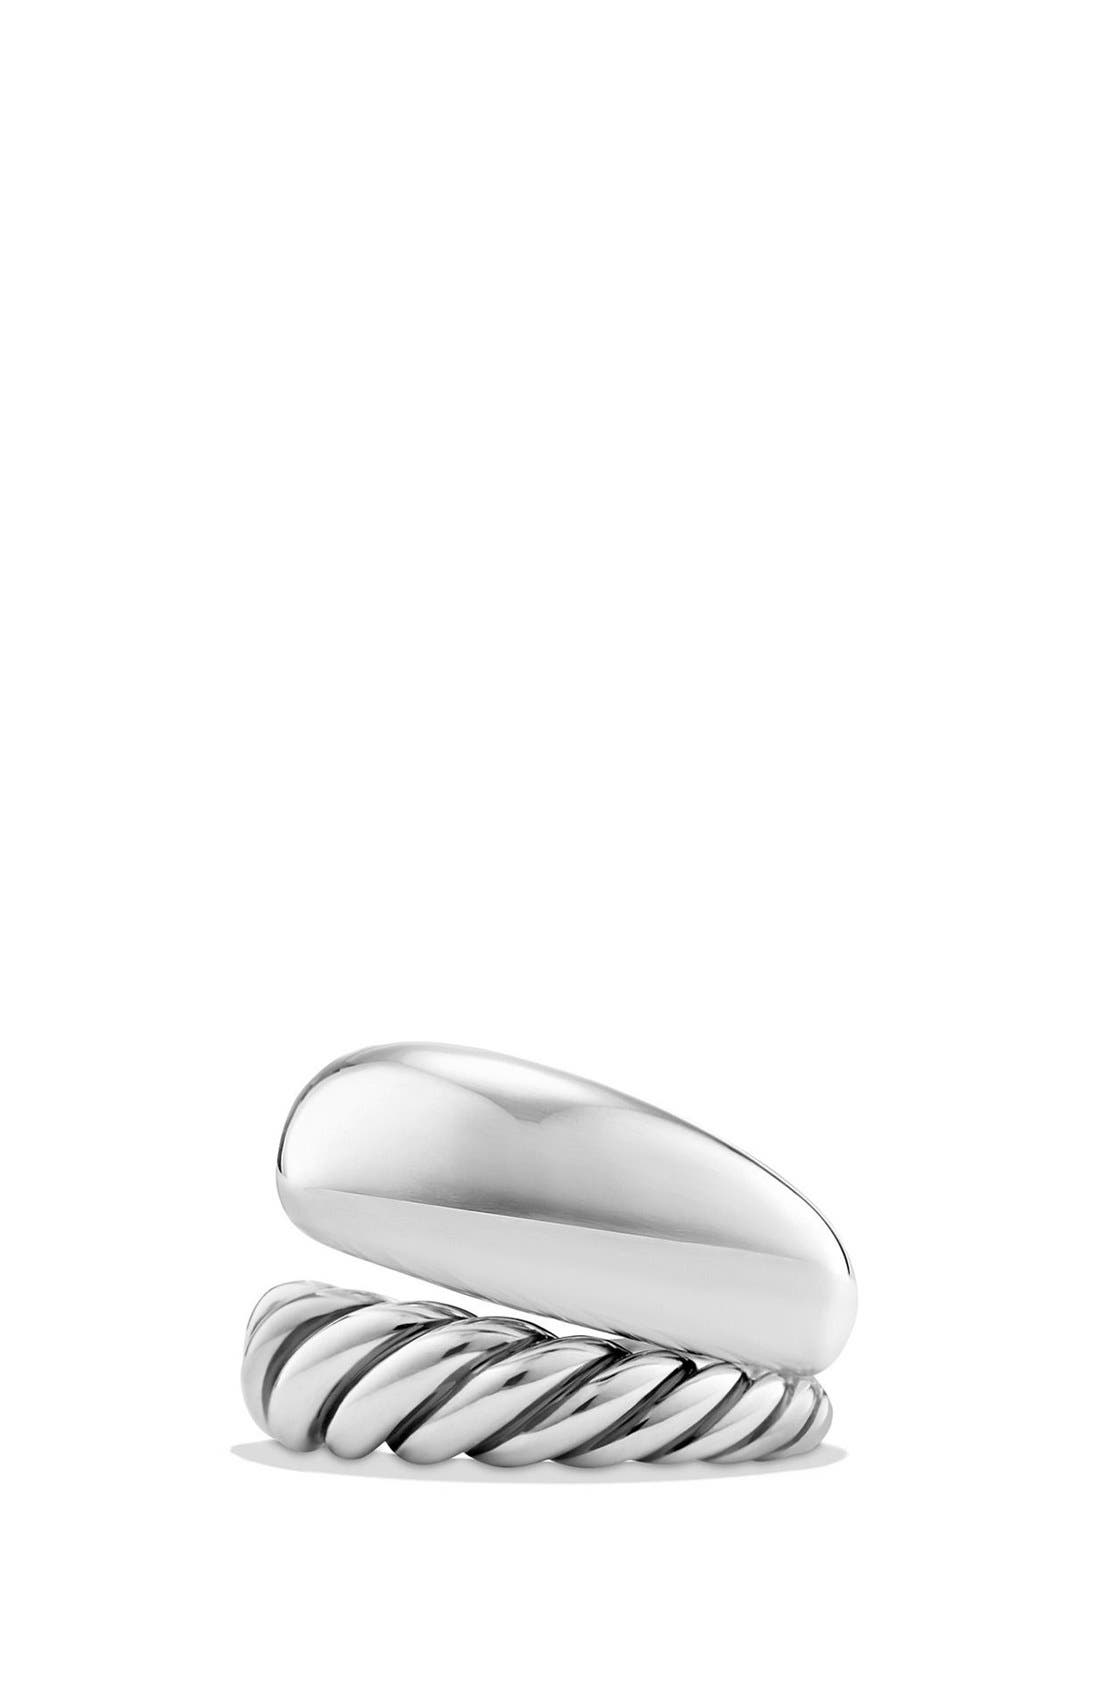 David Yurman 'Pure Form' Two Row Ring